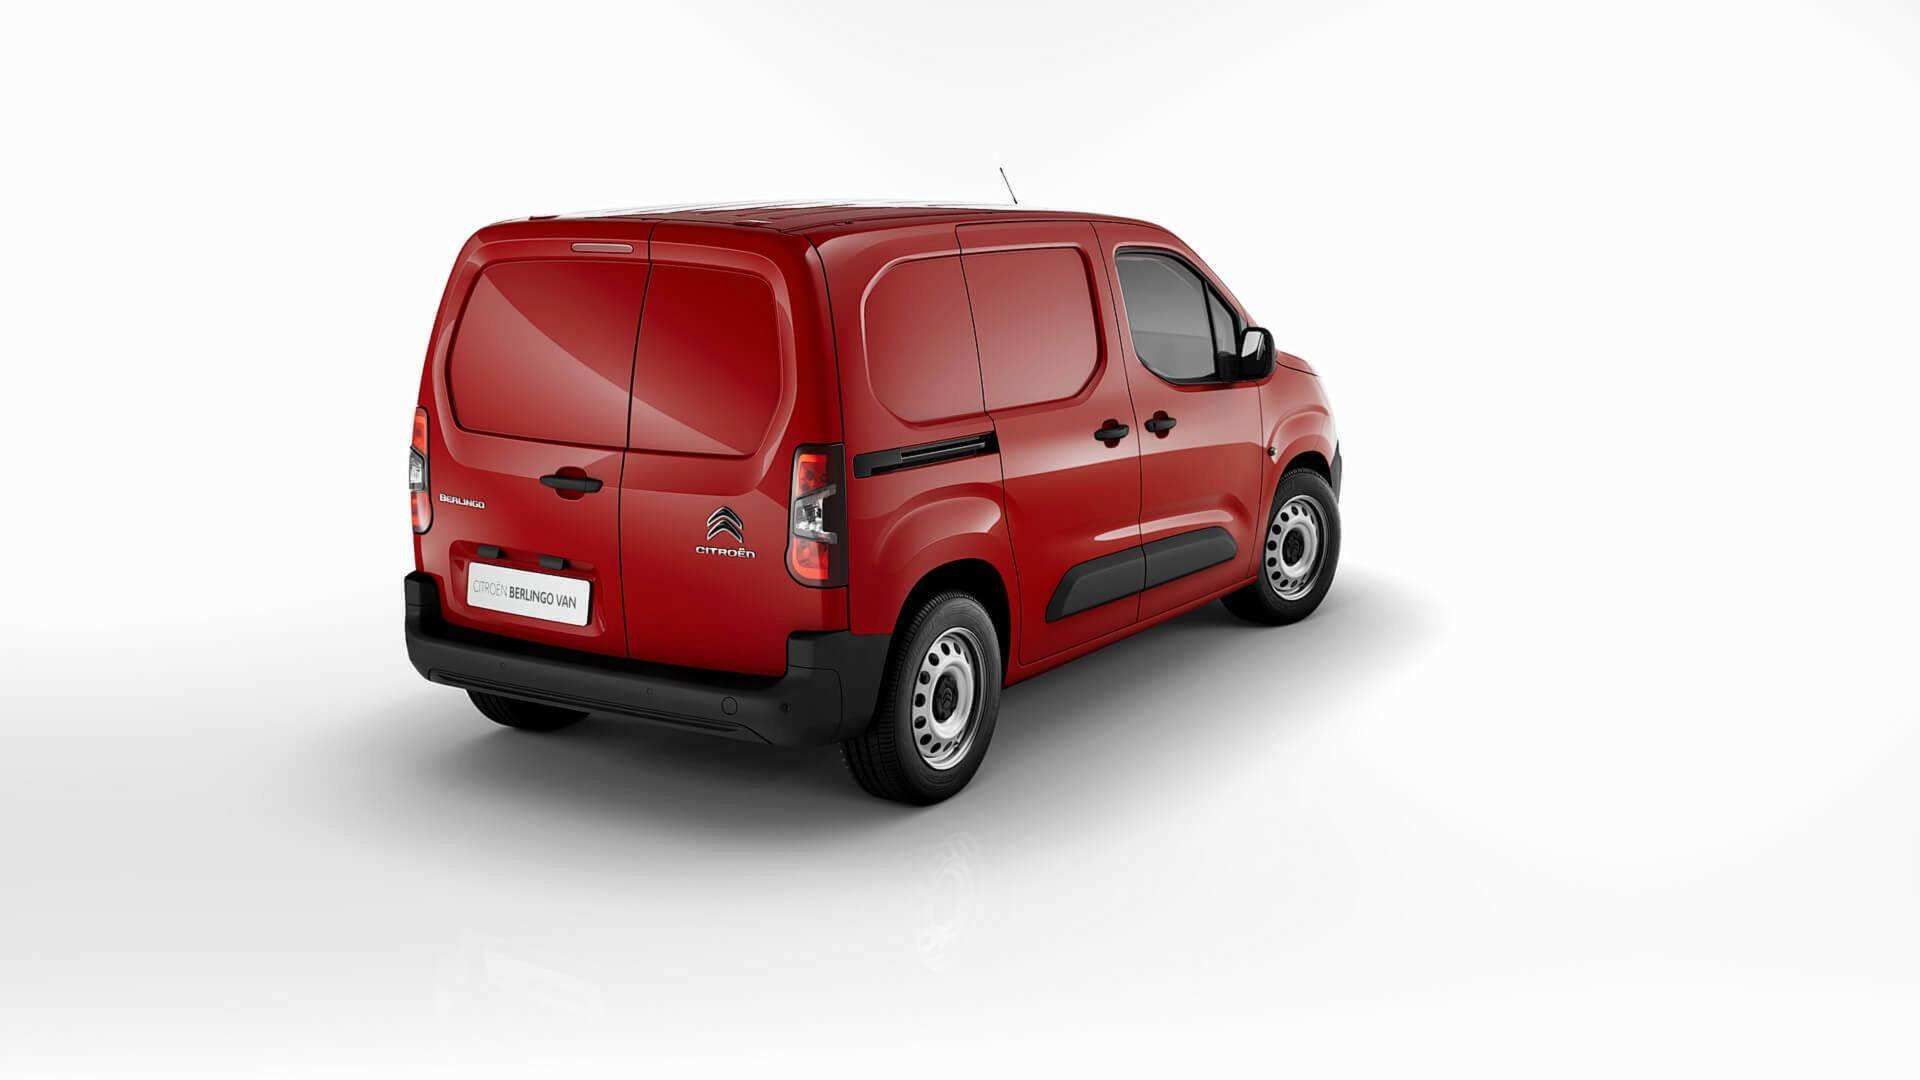 45 Concept of 2019 Citroen Berlingo 2 Review with 2019 Citroen Berlingo 2